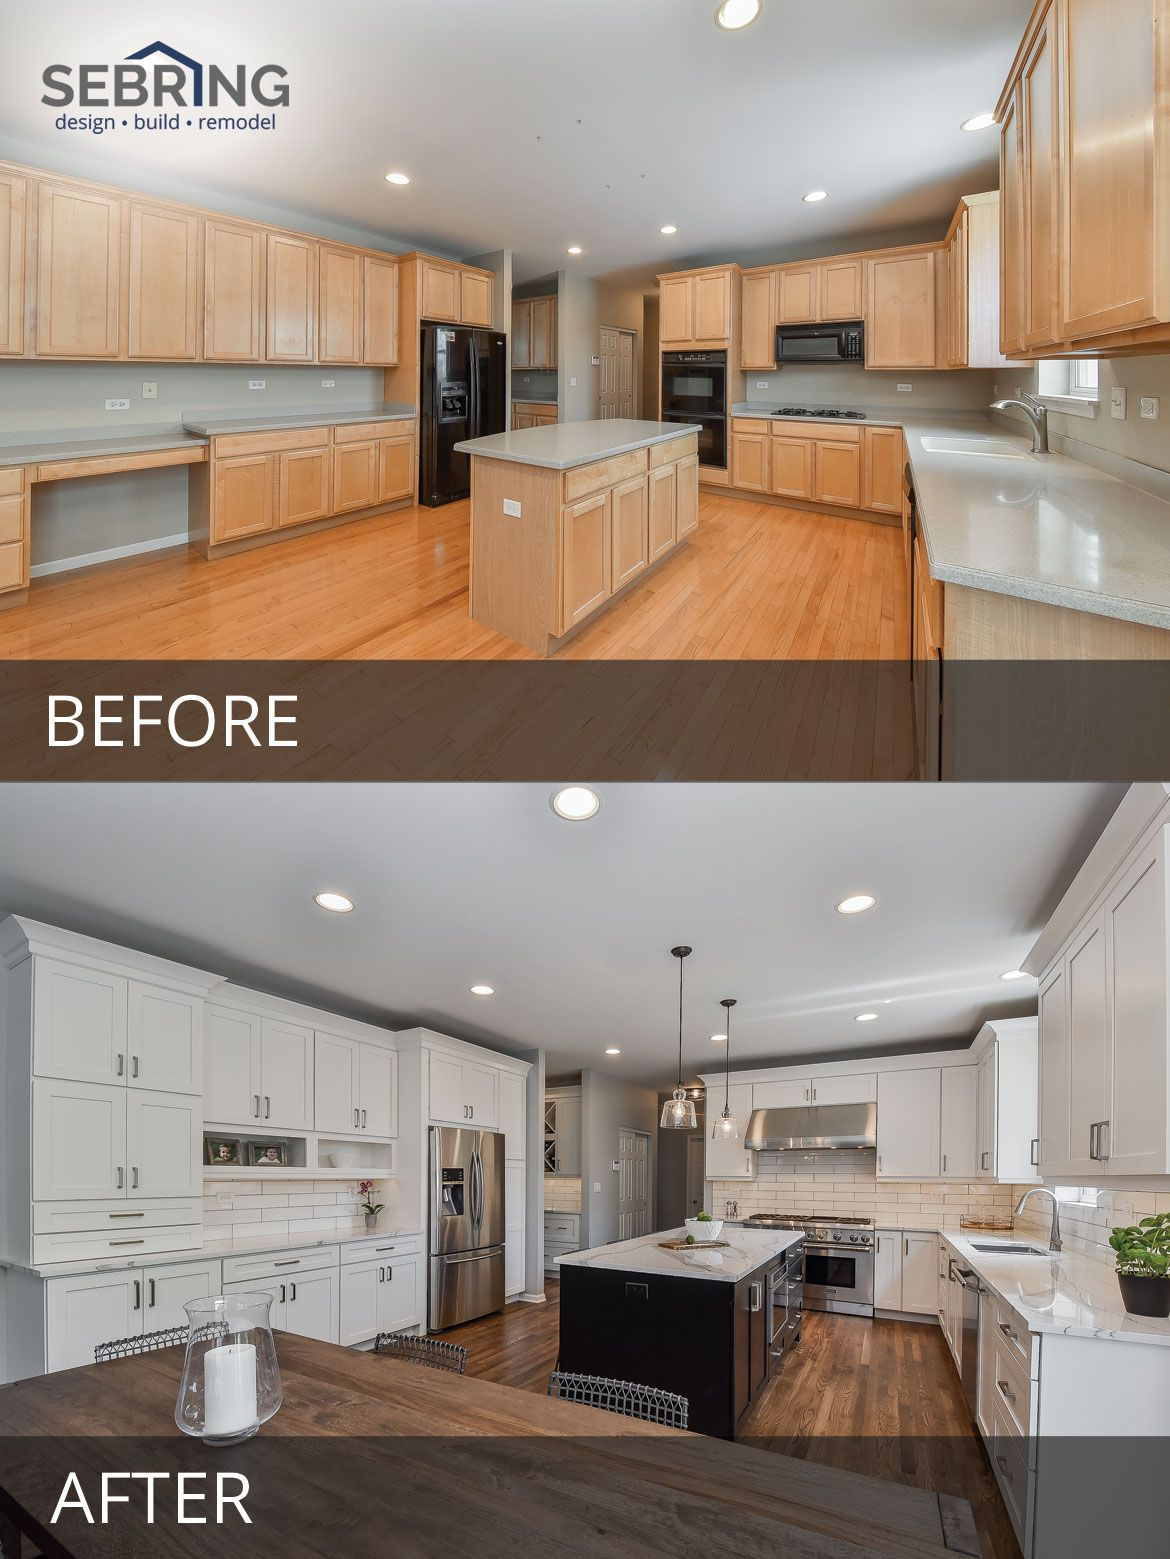 Kitchen Remodel Cost Where To Spend And How To Save On: Pete & Mary's Kitchen Before & After Pictures In 2019